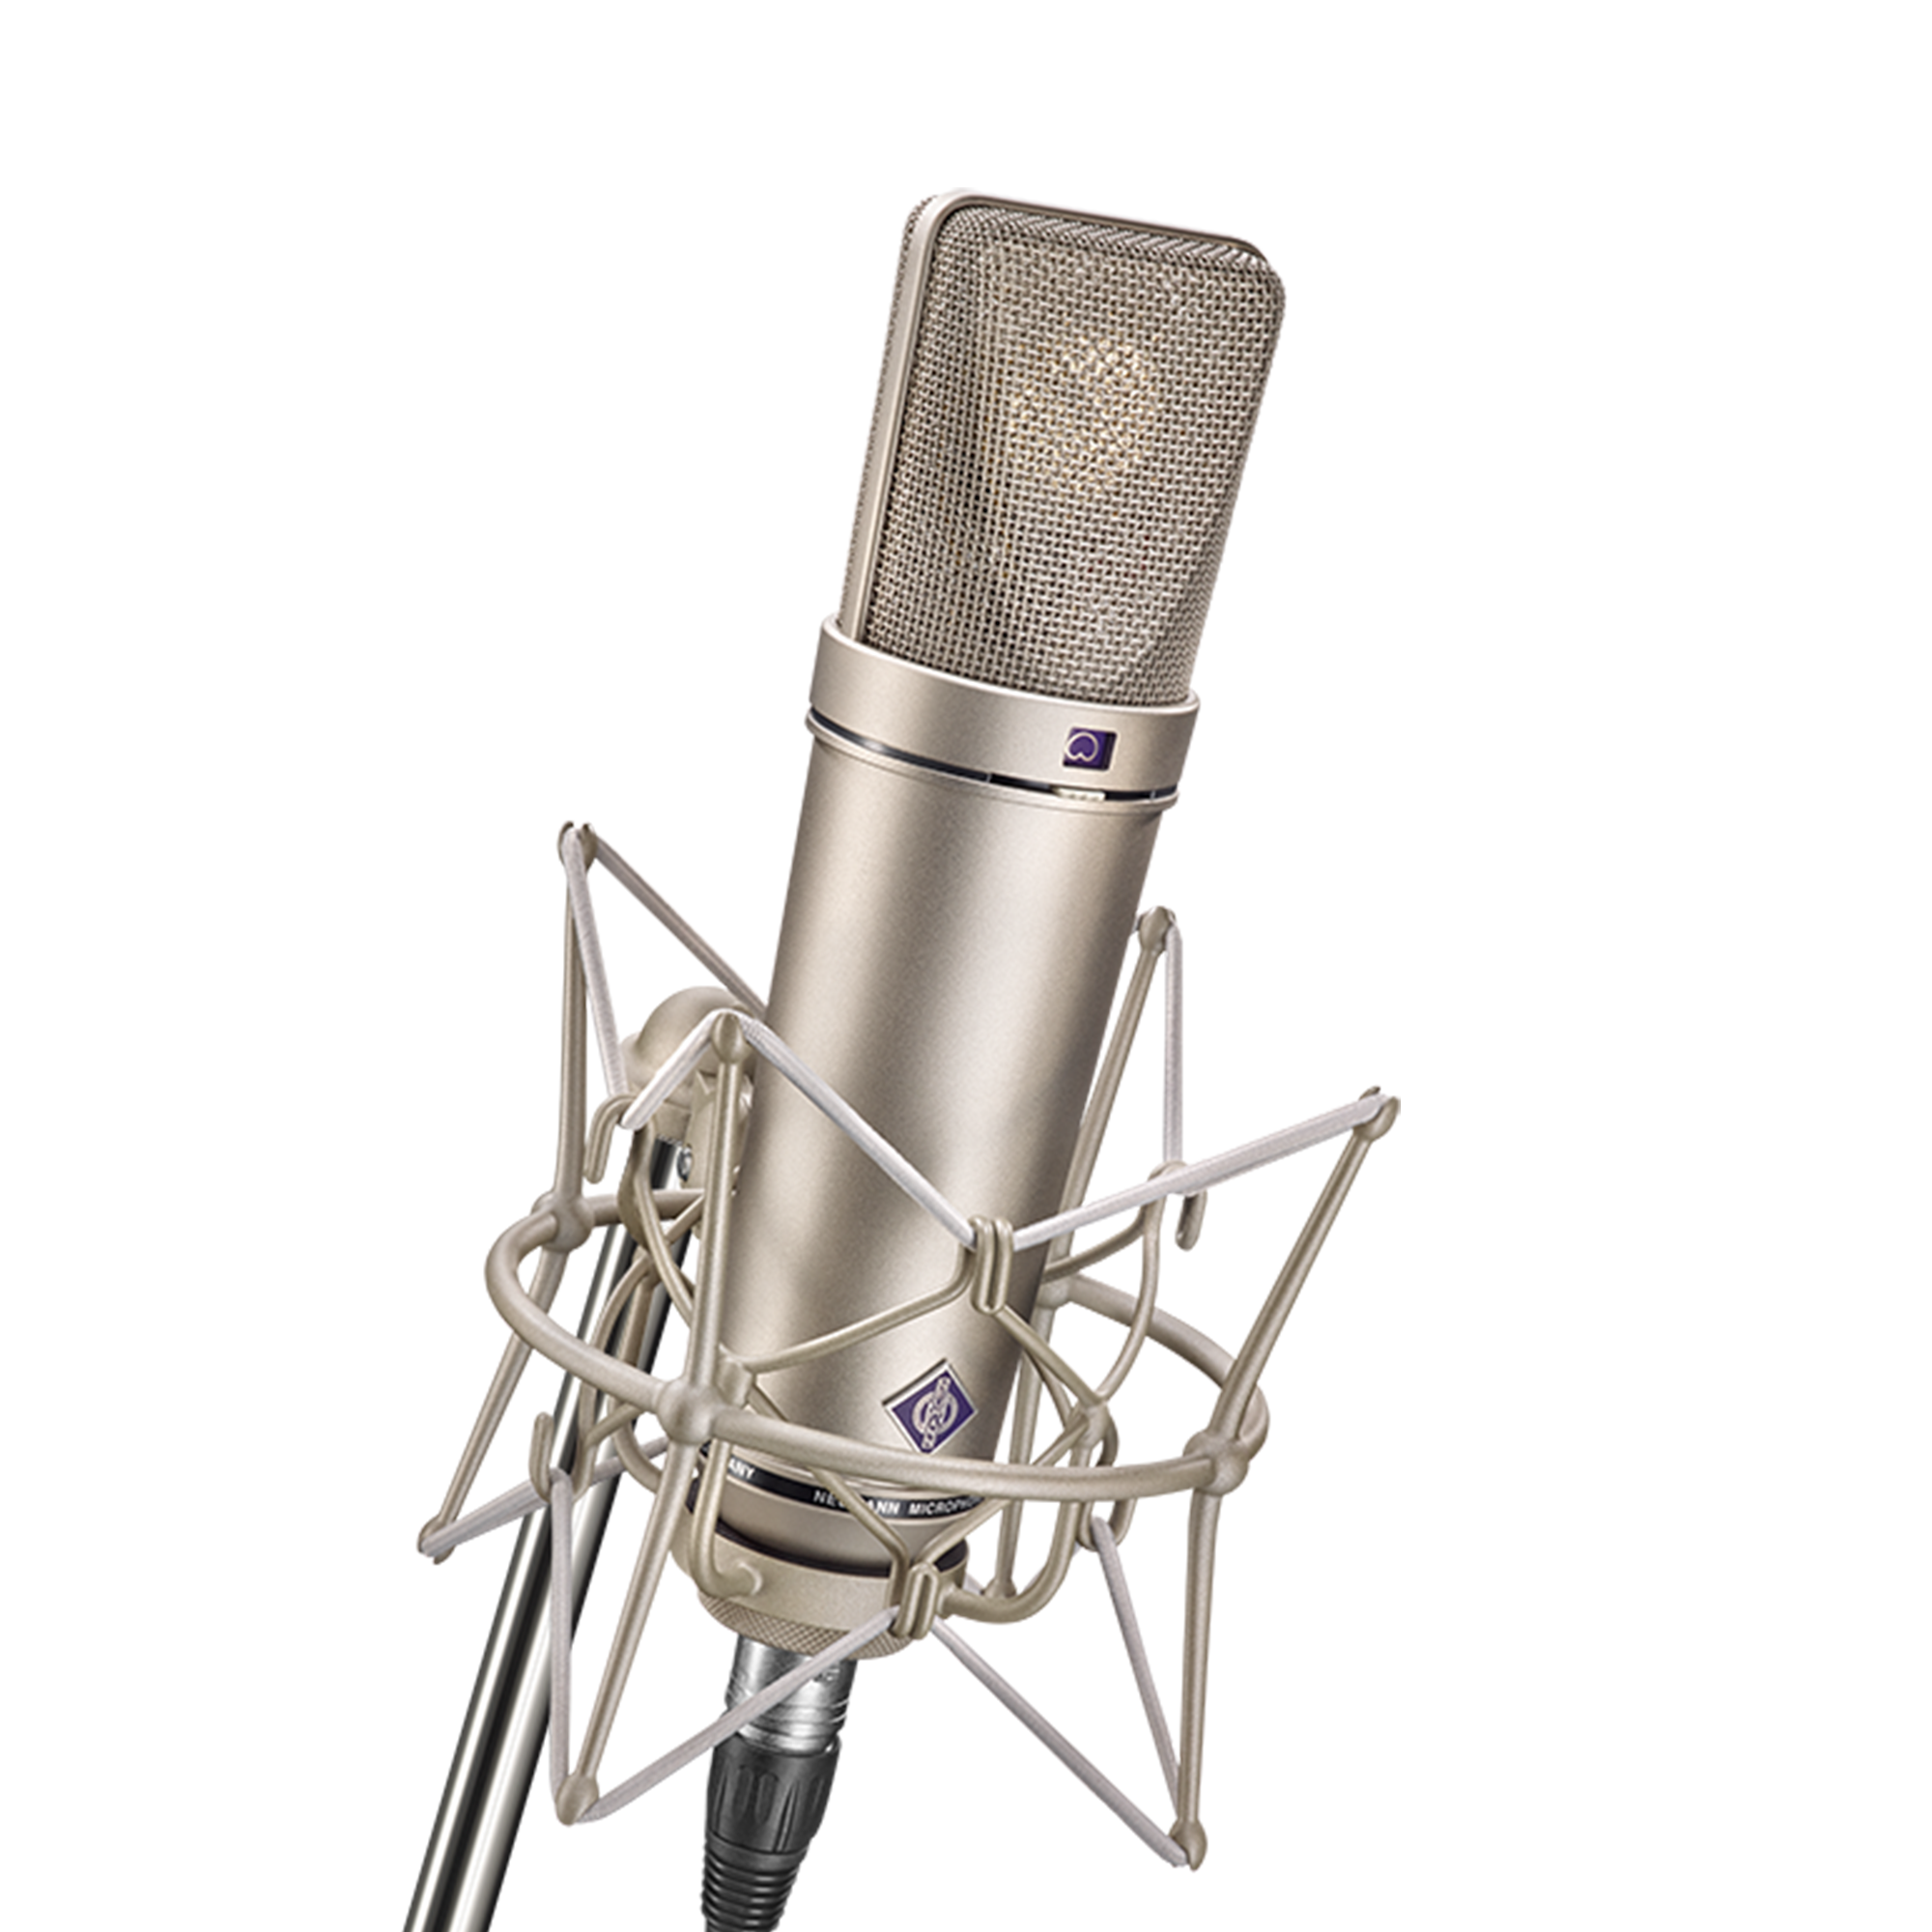 777p 0001 product detail x2 desktop u 87 ai studio set neumann studio microphone m